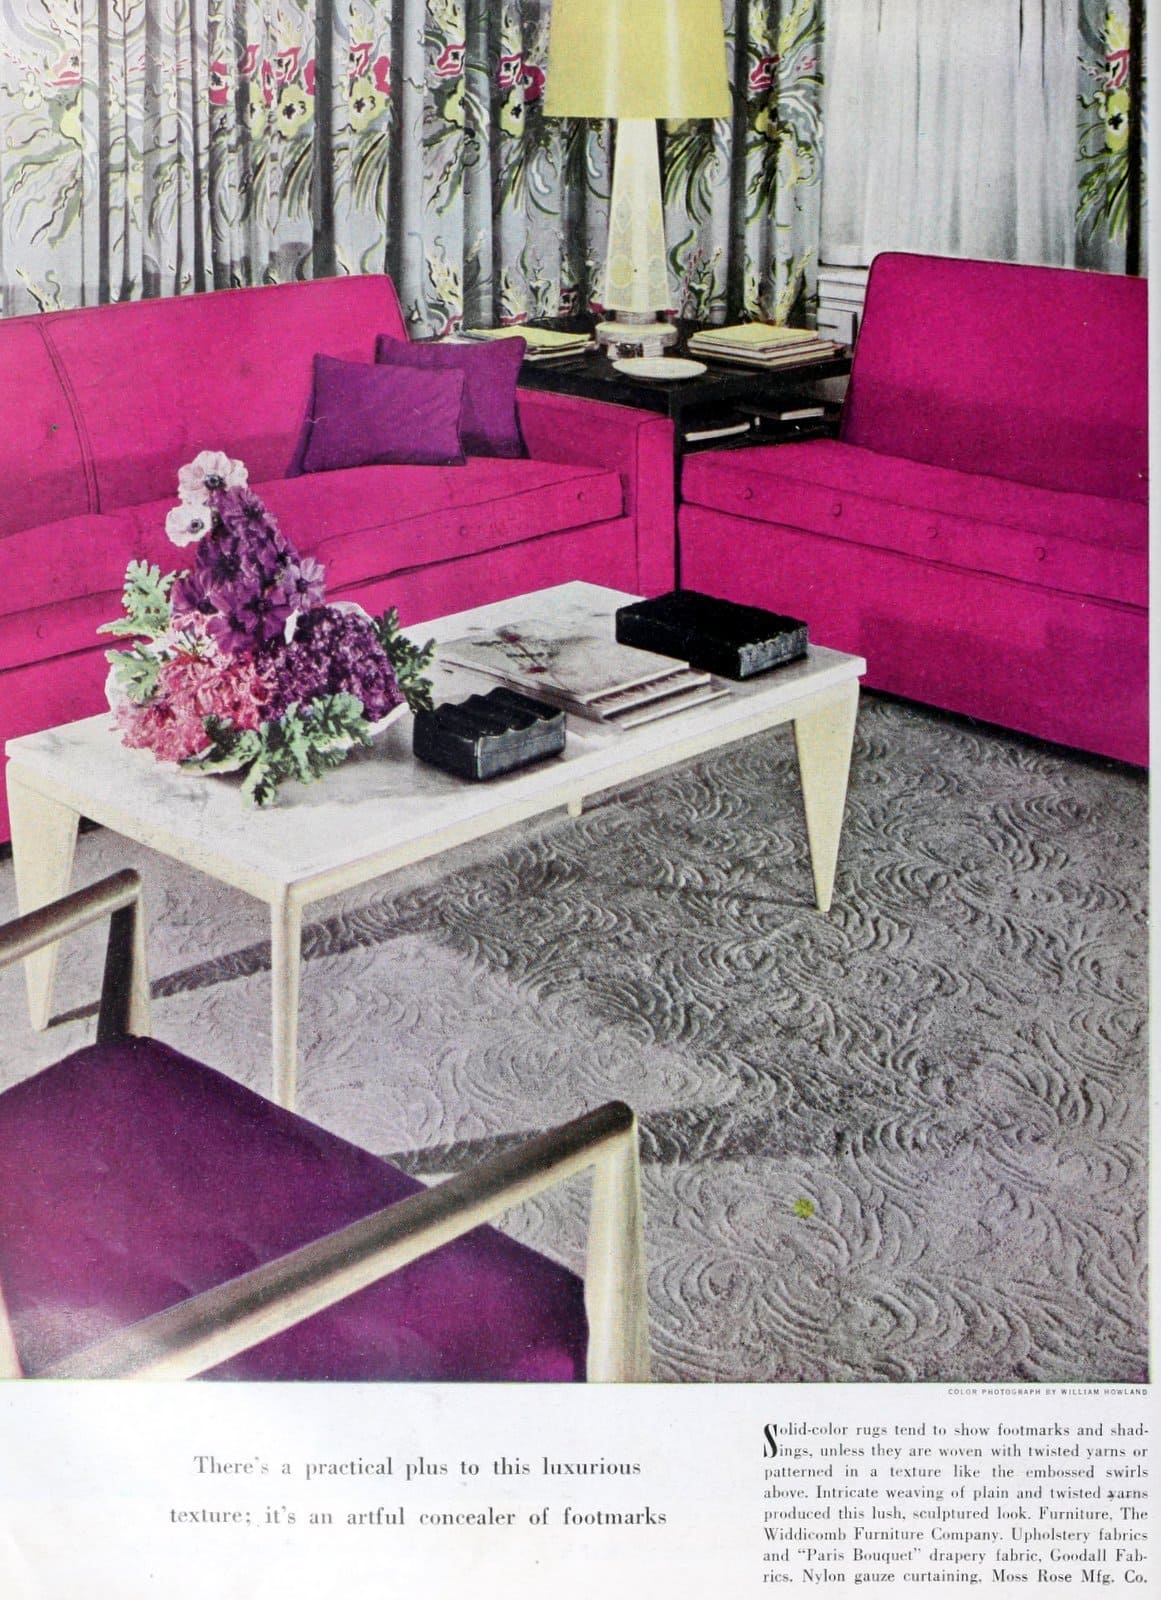 Vintage gray textured carpet with a hot pink sofa (1949)